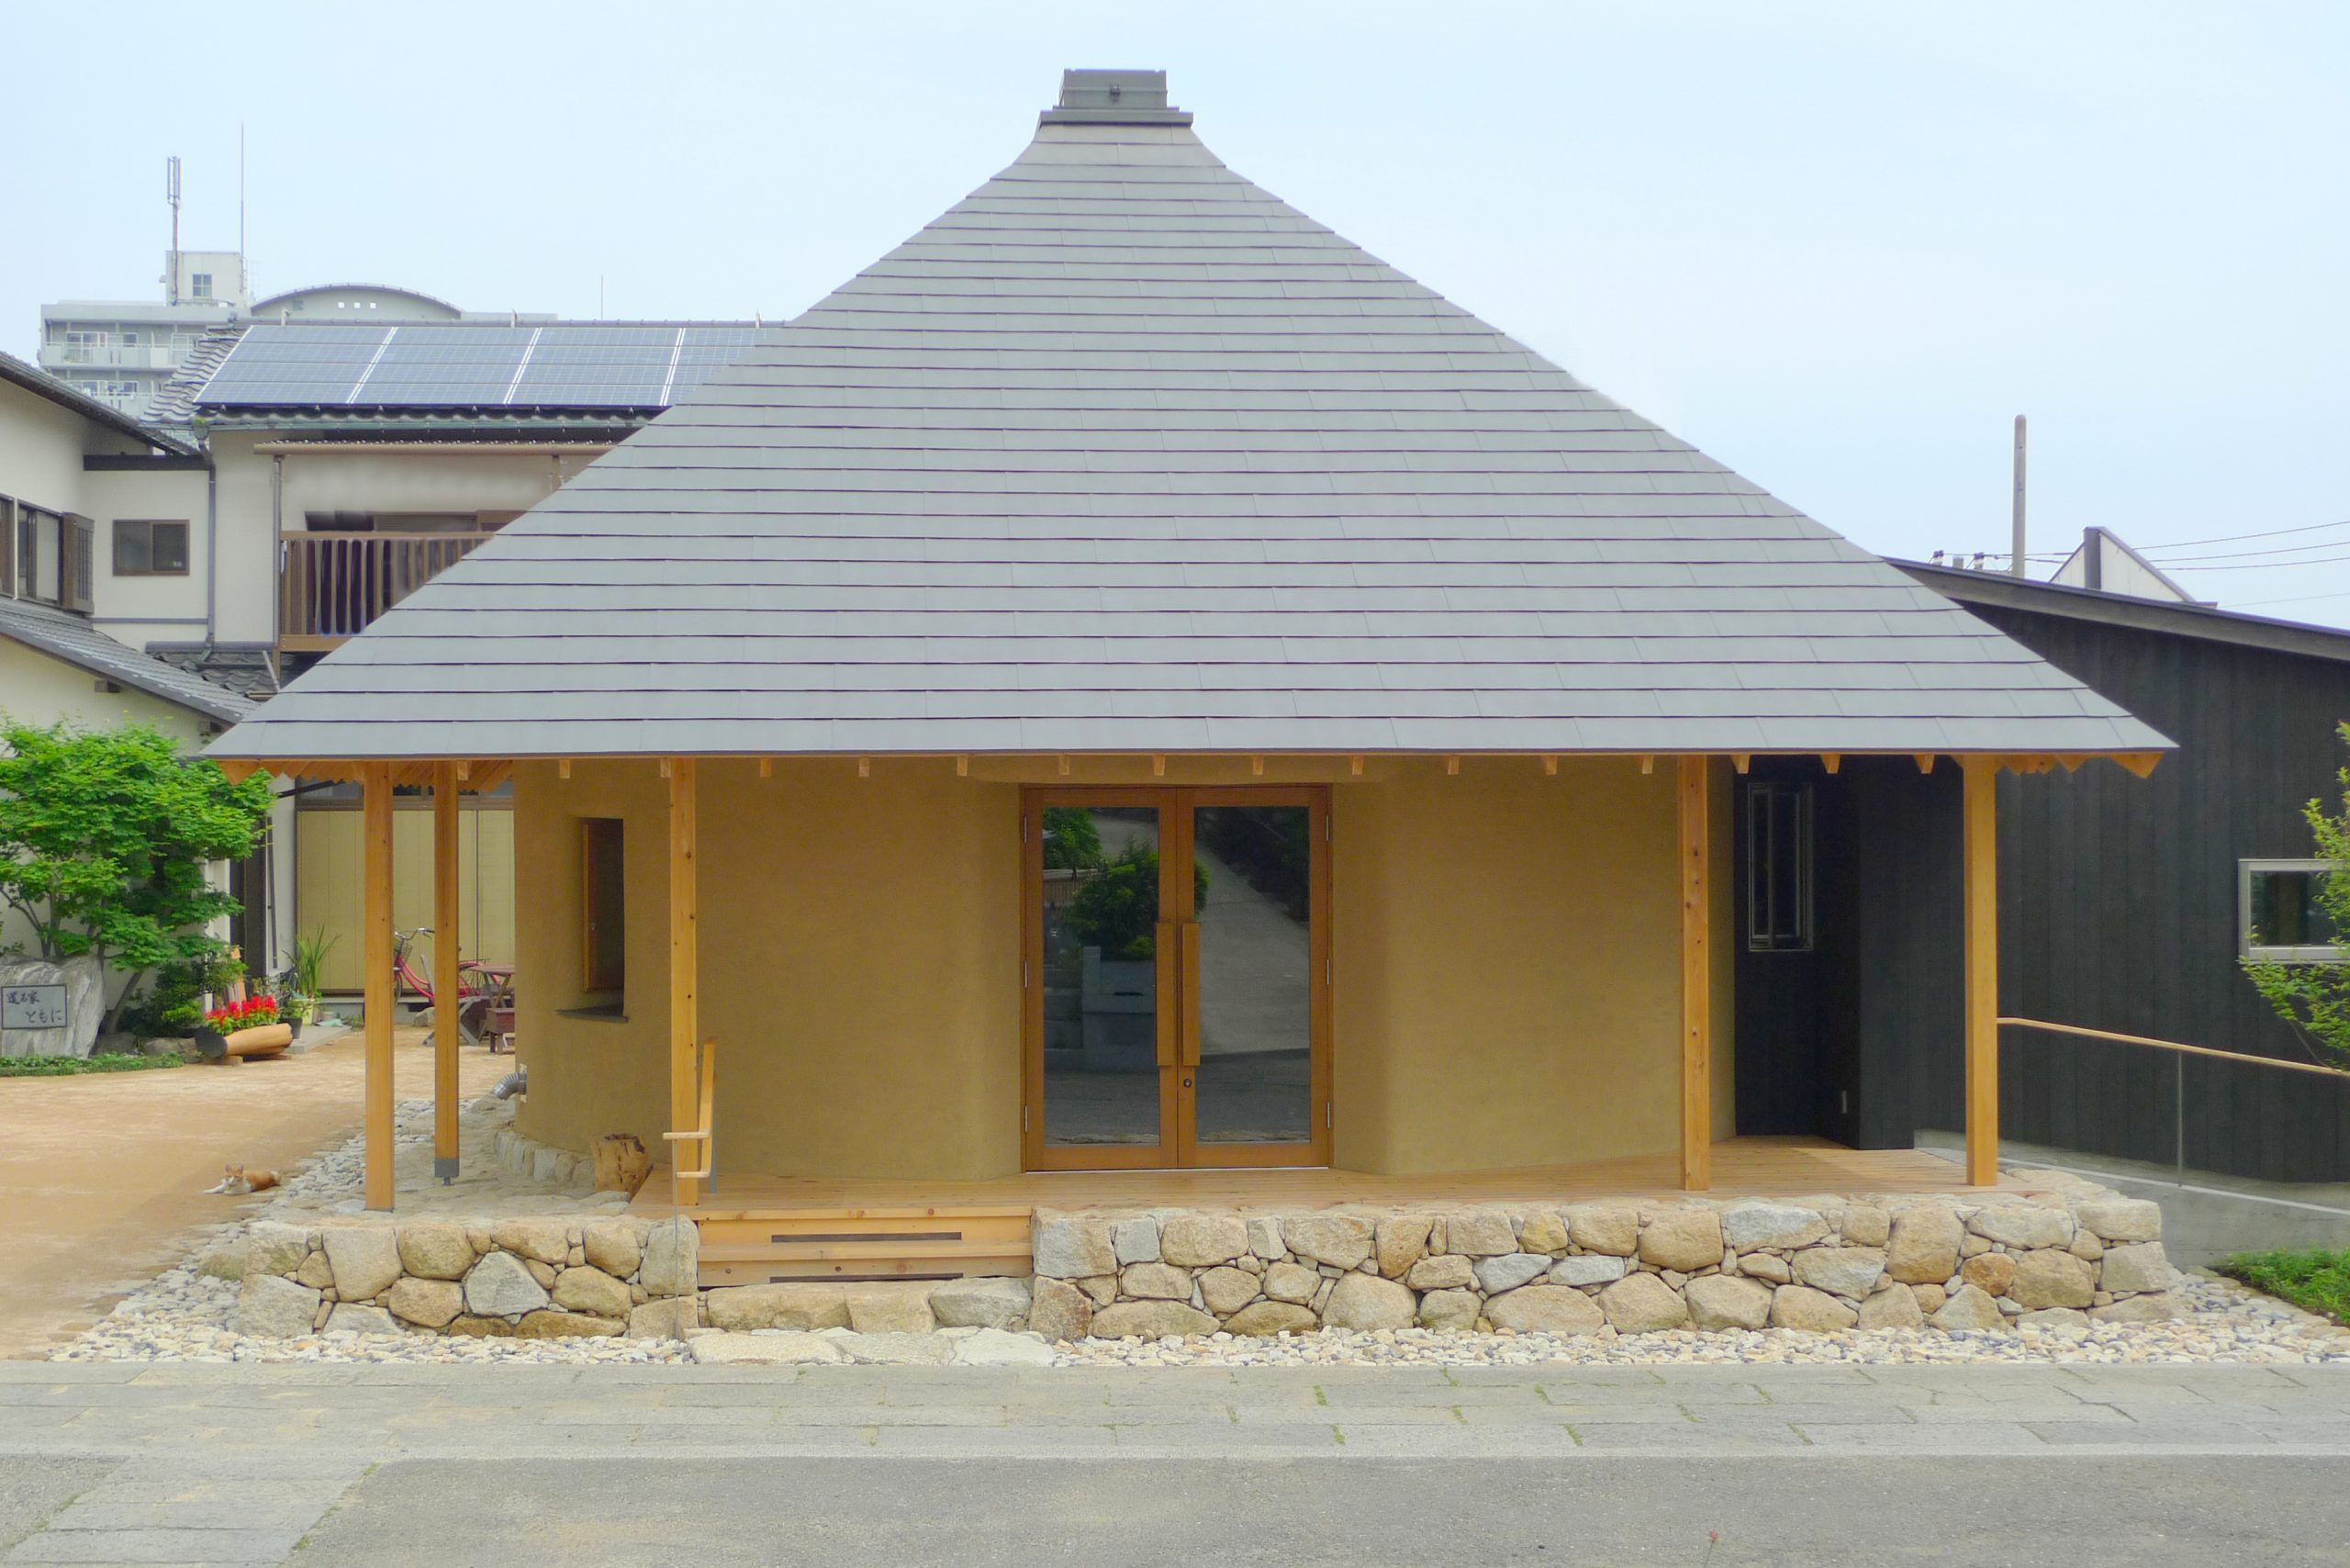 Straw Bale Building in Japan